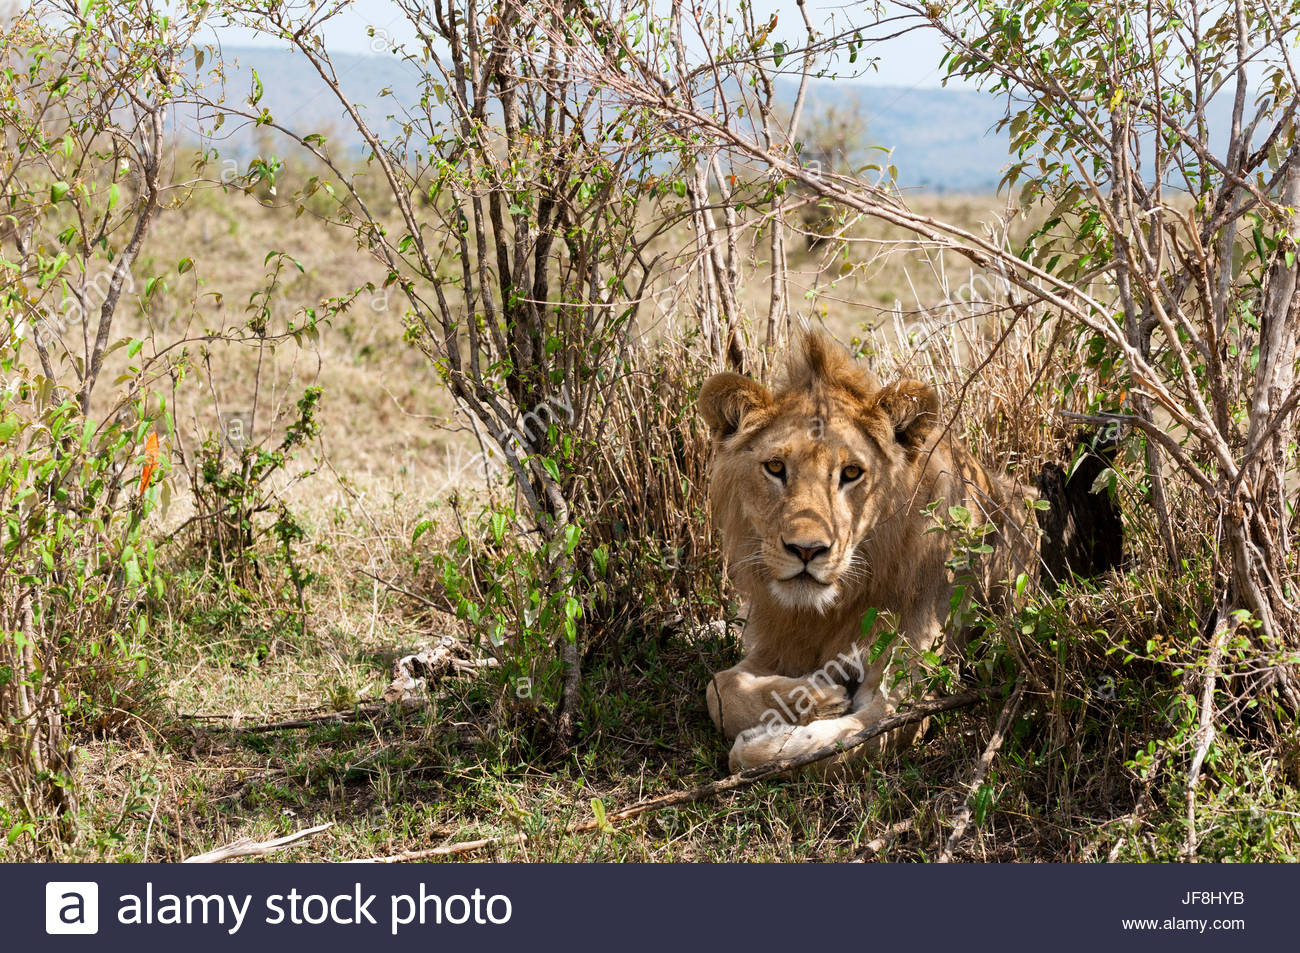 Un homme lion, Panthera leo, se reposant dans la brousse. Photo Stock